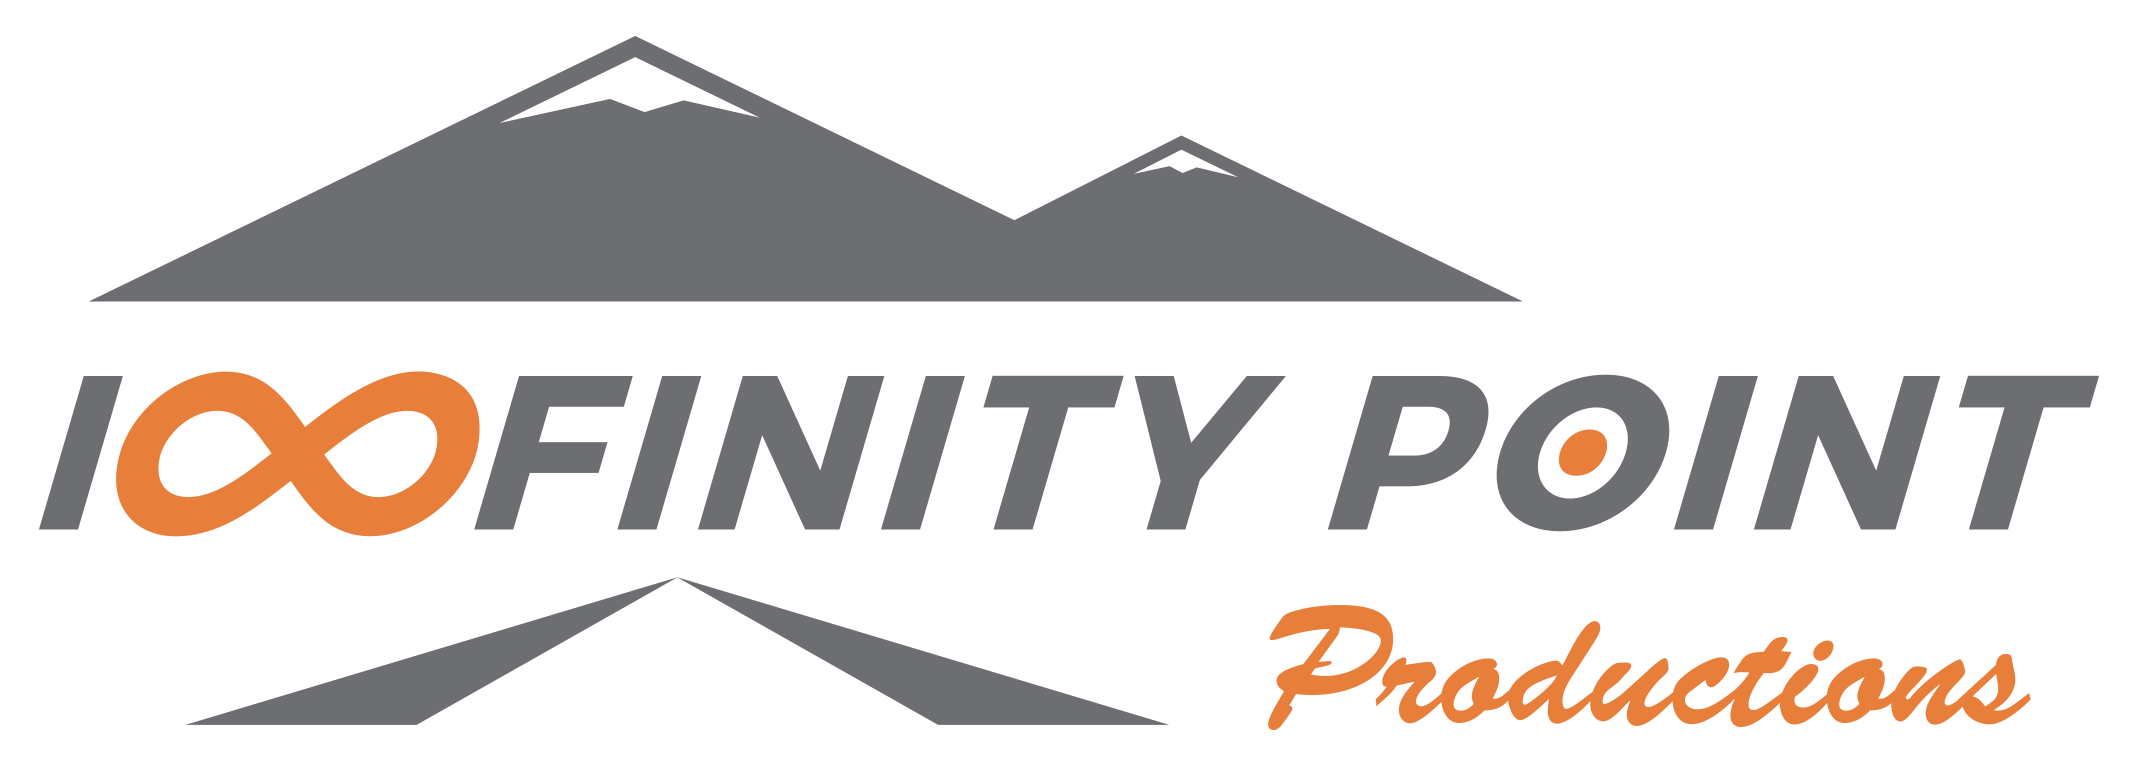 Infinity Point Productions logo